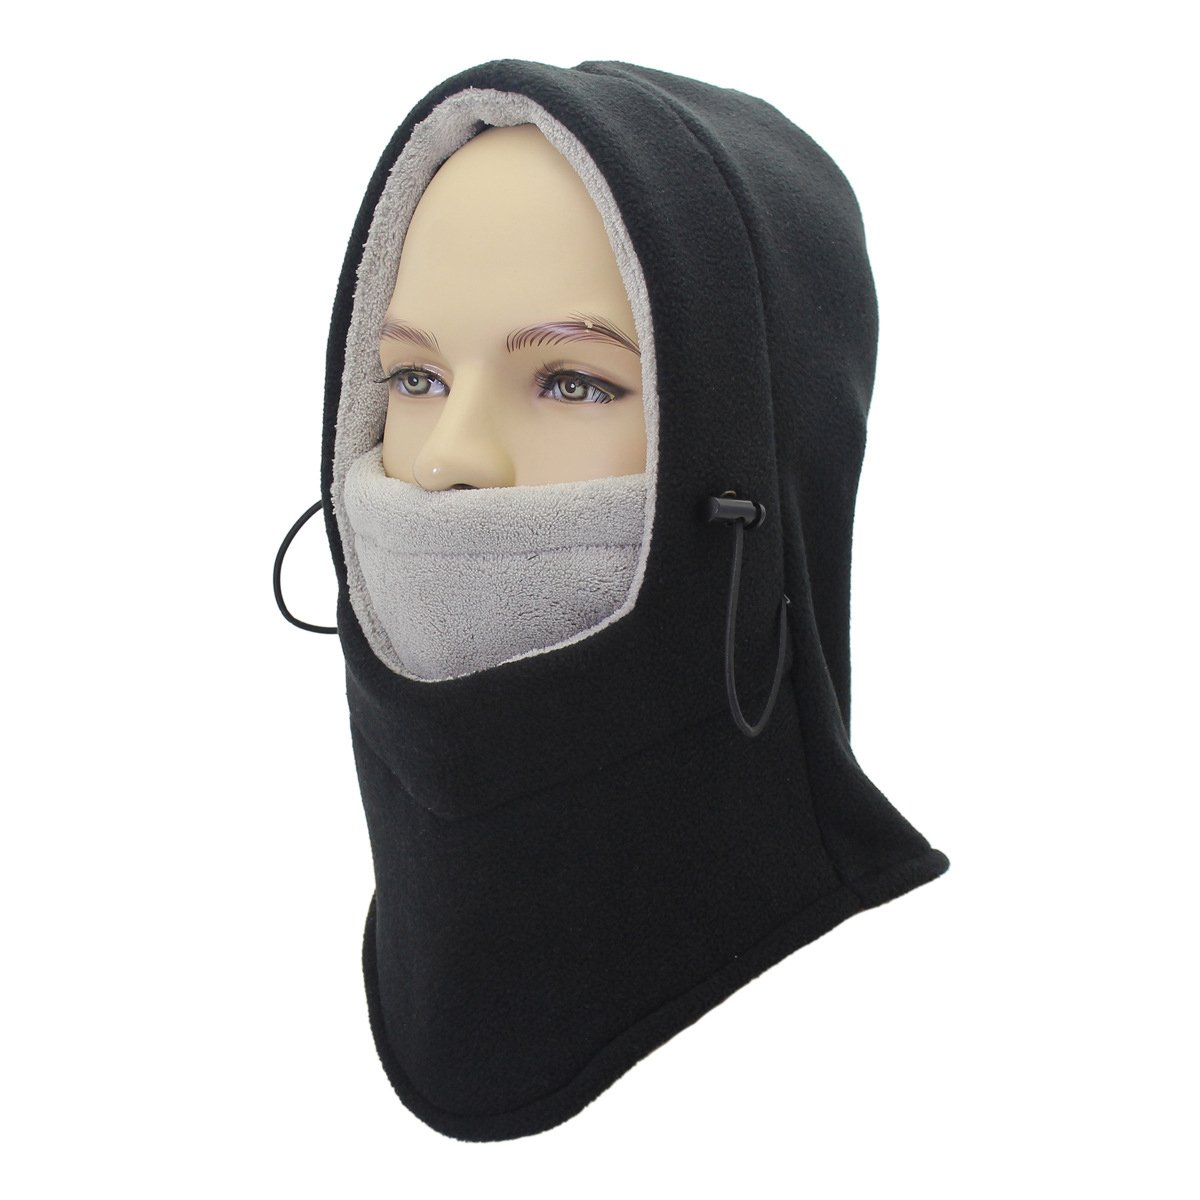 Balaclava Full Face Ski Mask - Balaclava Motorcycle Fleece Hood - Neck Warmers - Outdoor Sports Cold Winter Windproof Balaclava Hat Mens Womens Setucamp